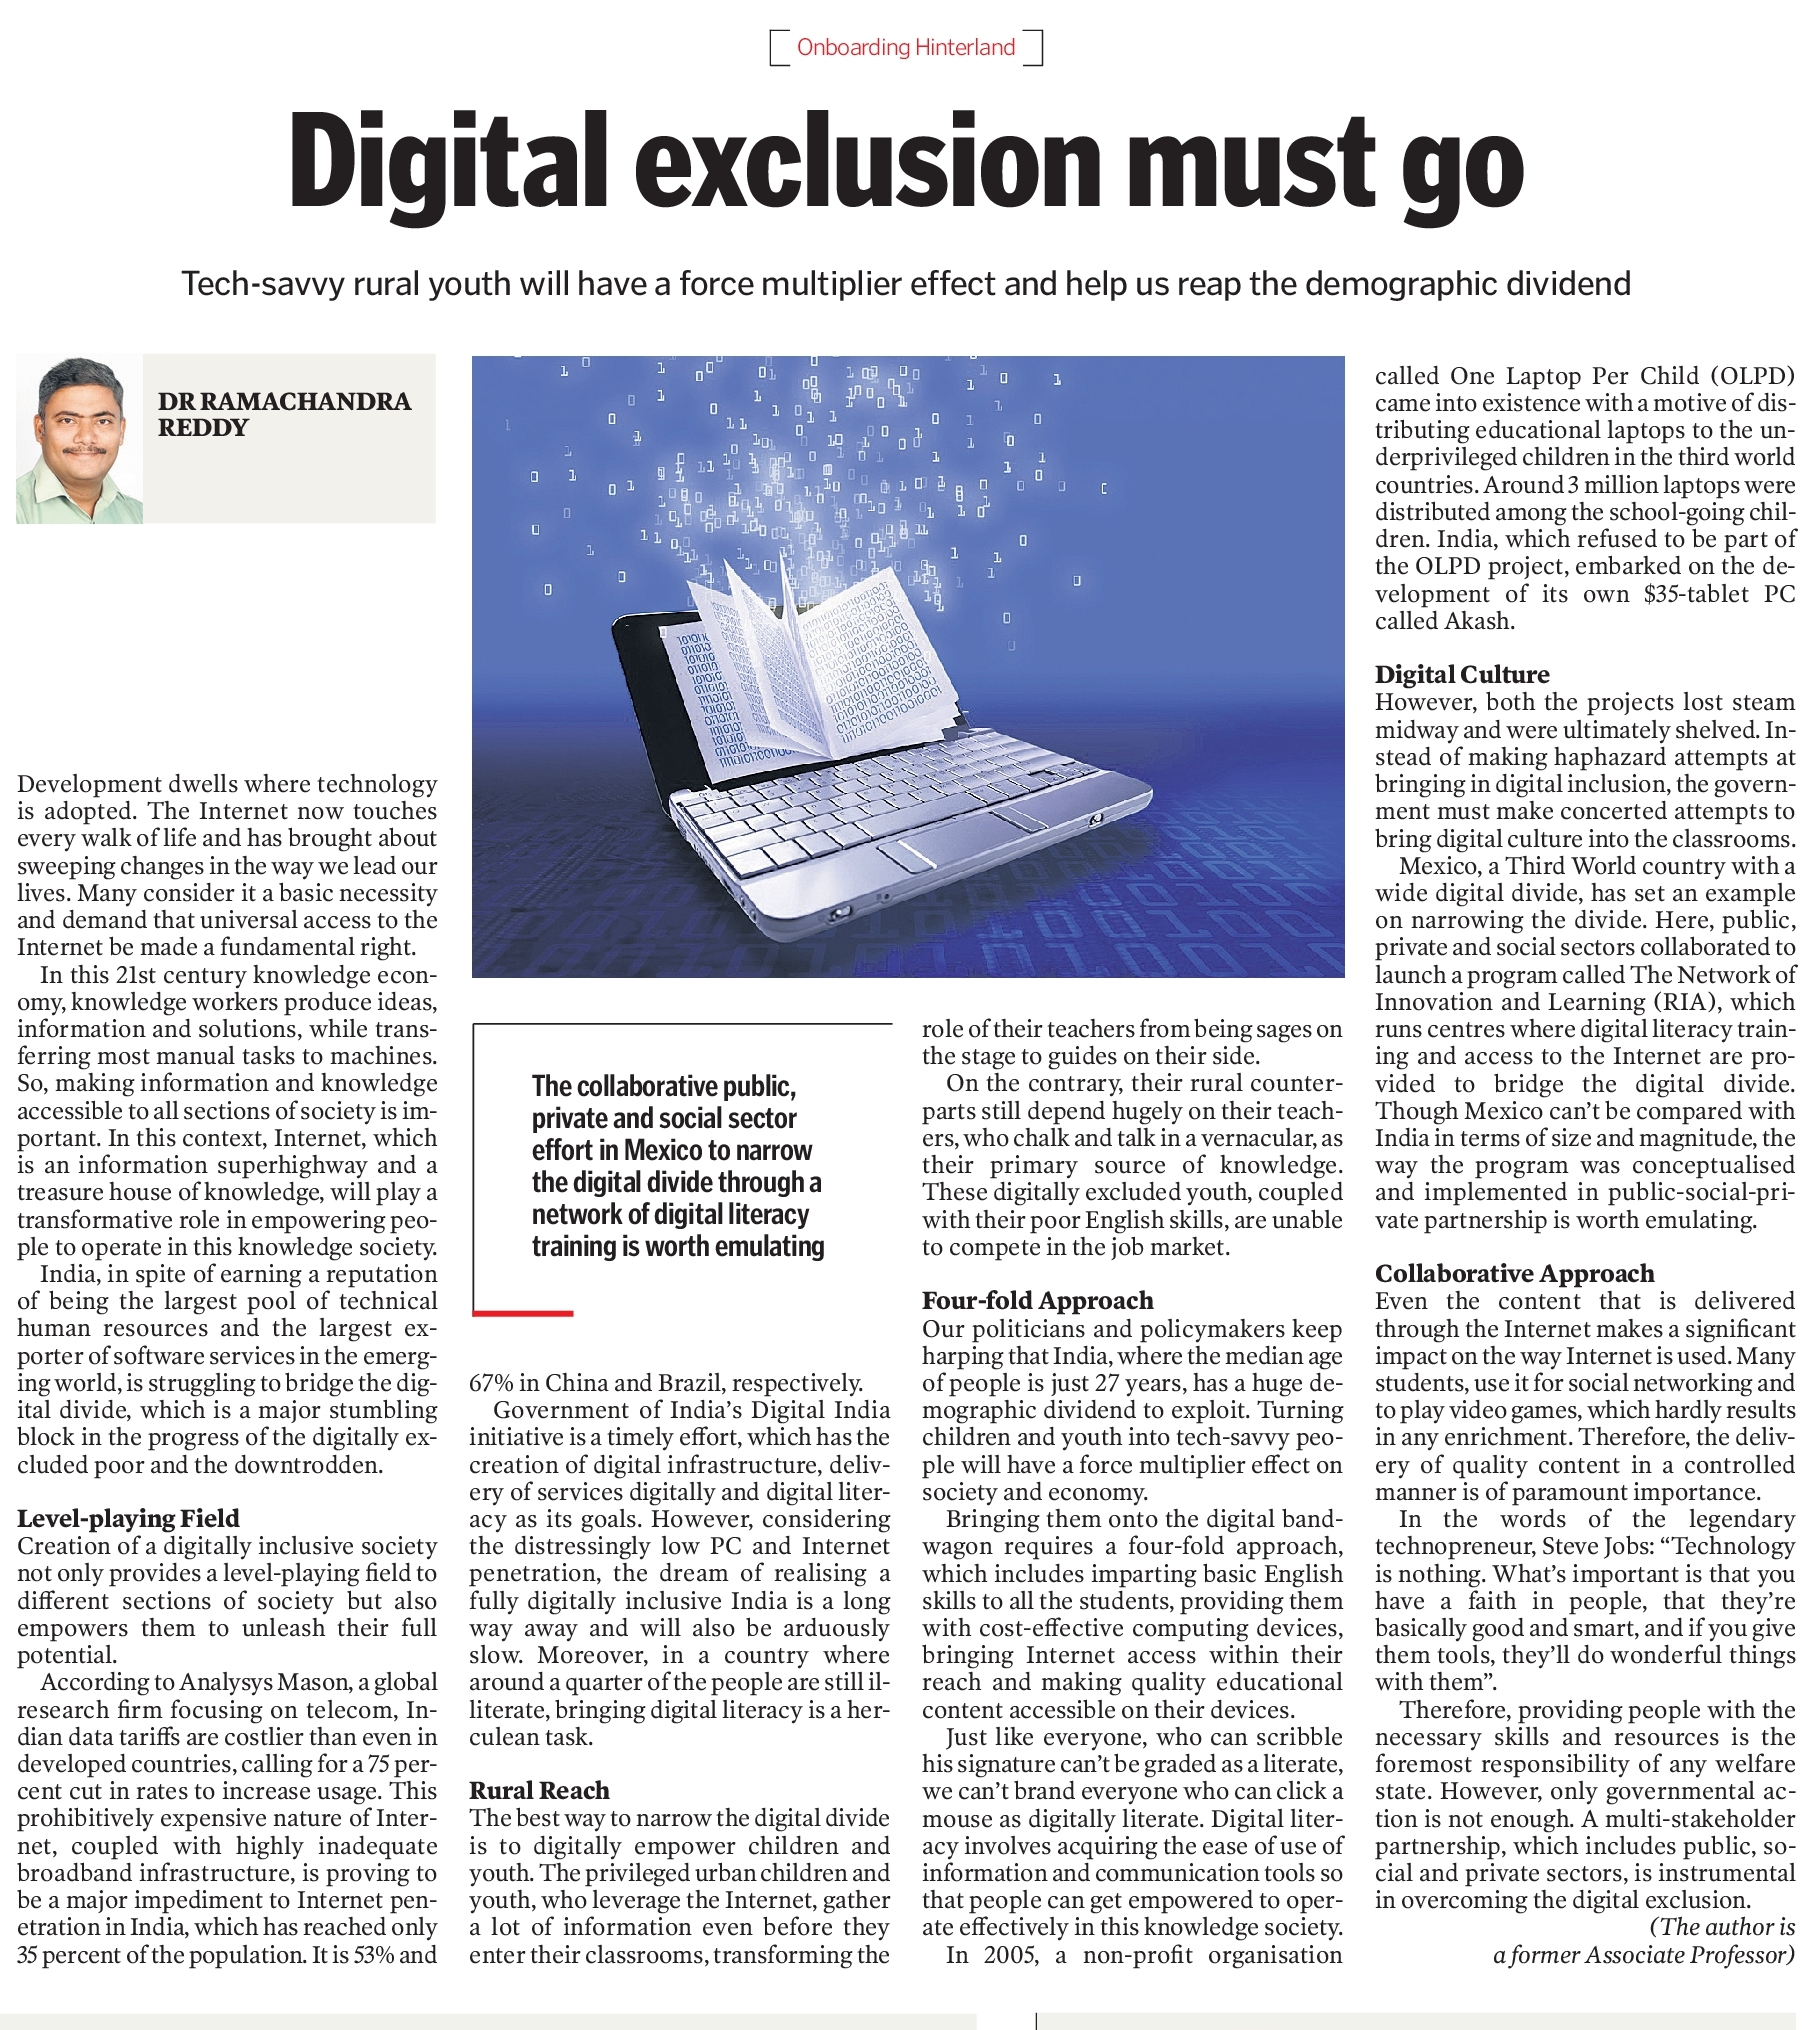 Digital exclusion must go